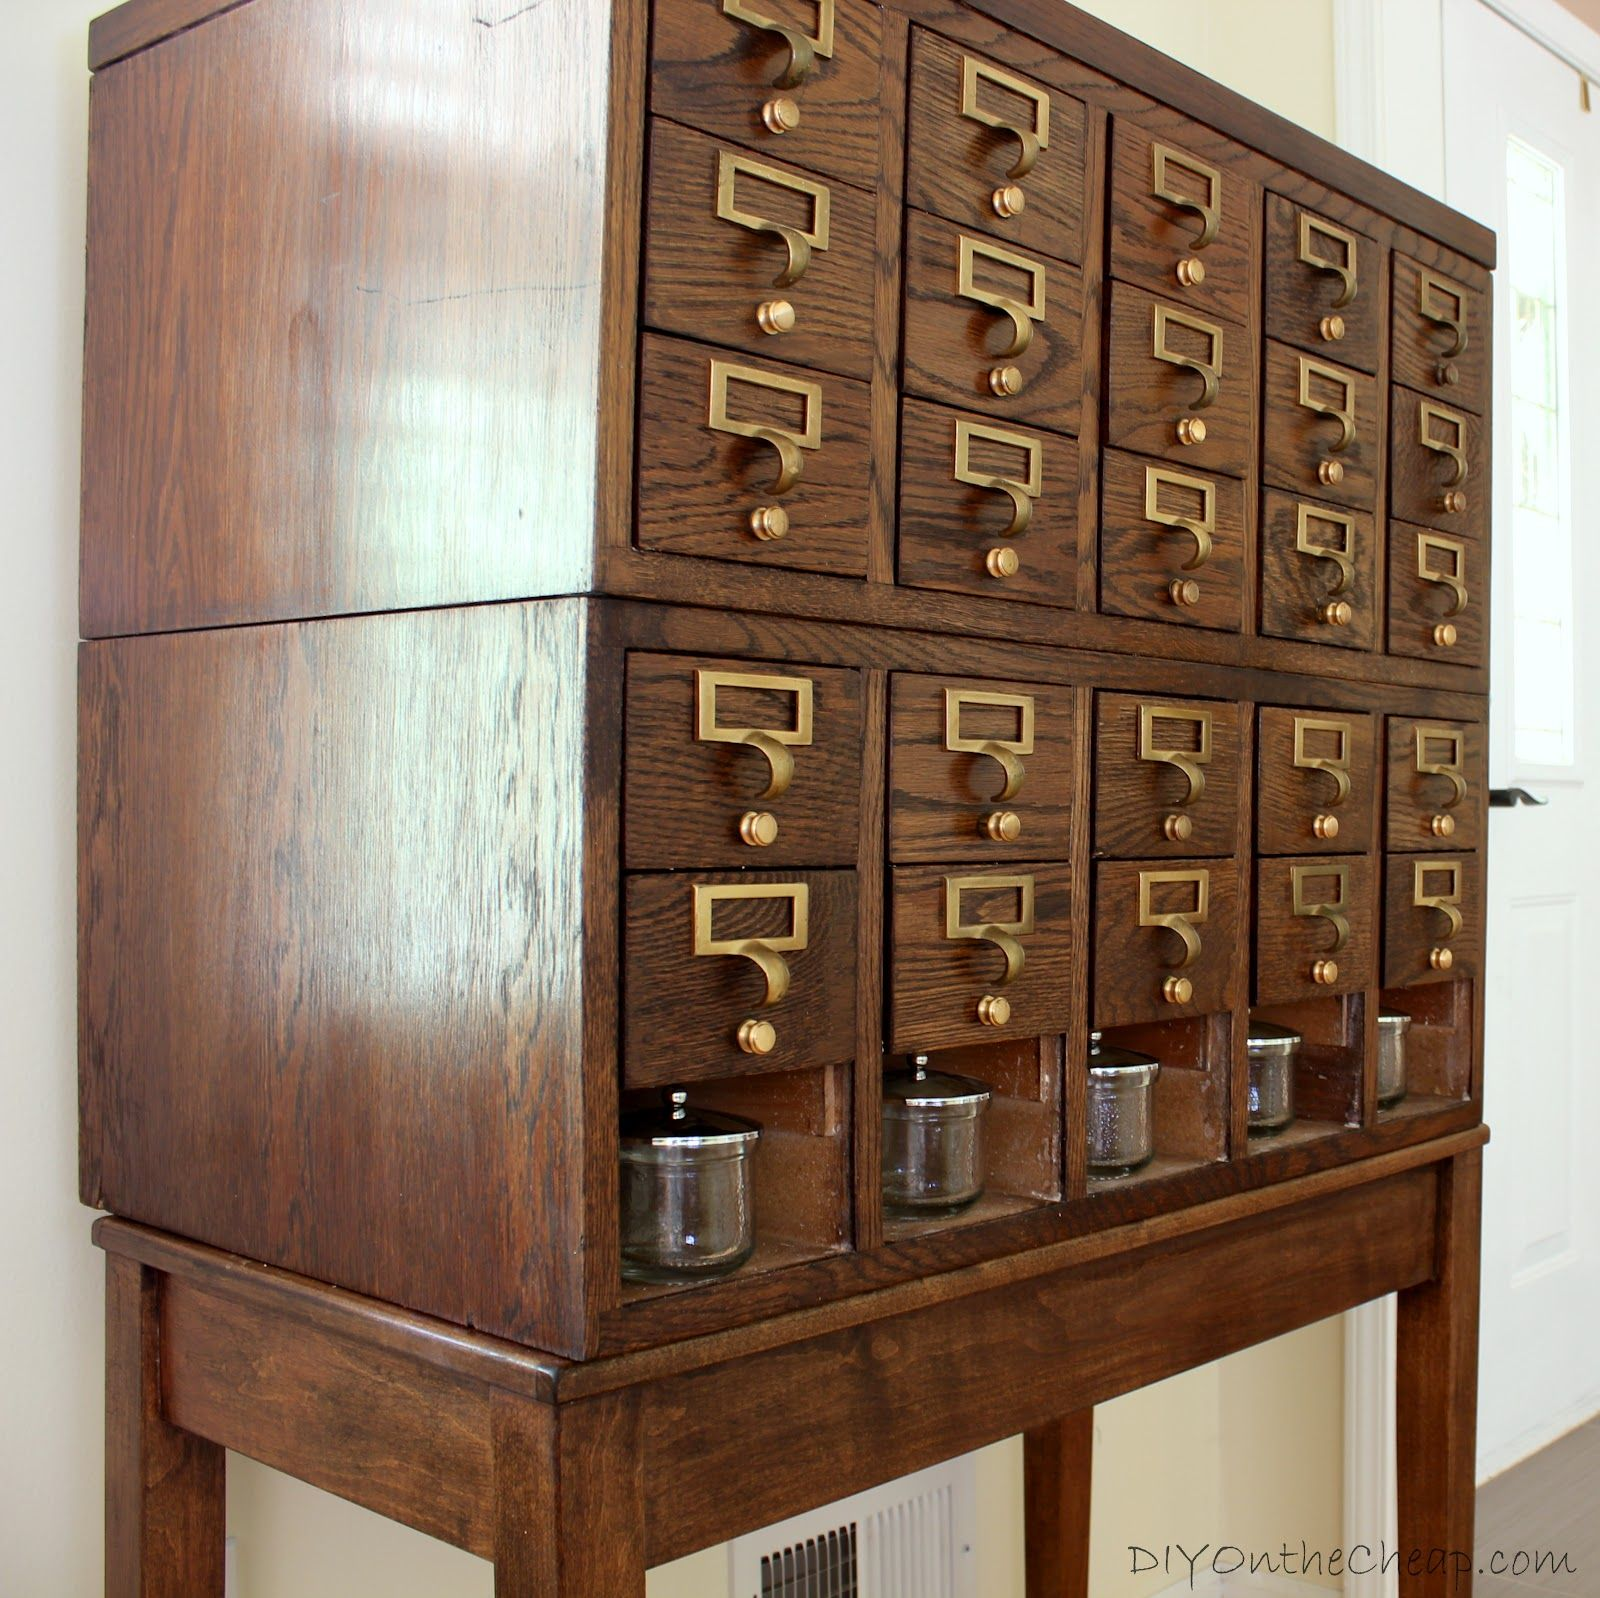 Stick A Fork In It It S Done Library Card Catalog Reveal Diy On The Cheap Library Card Catalog Card Catalog Library Card Catalog Cabinet